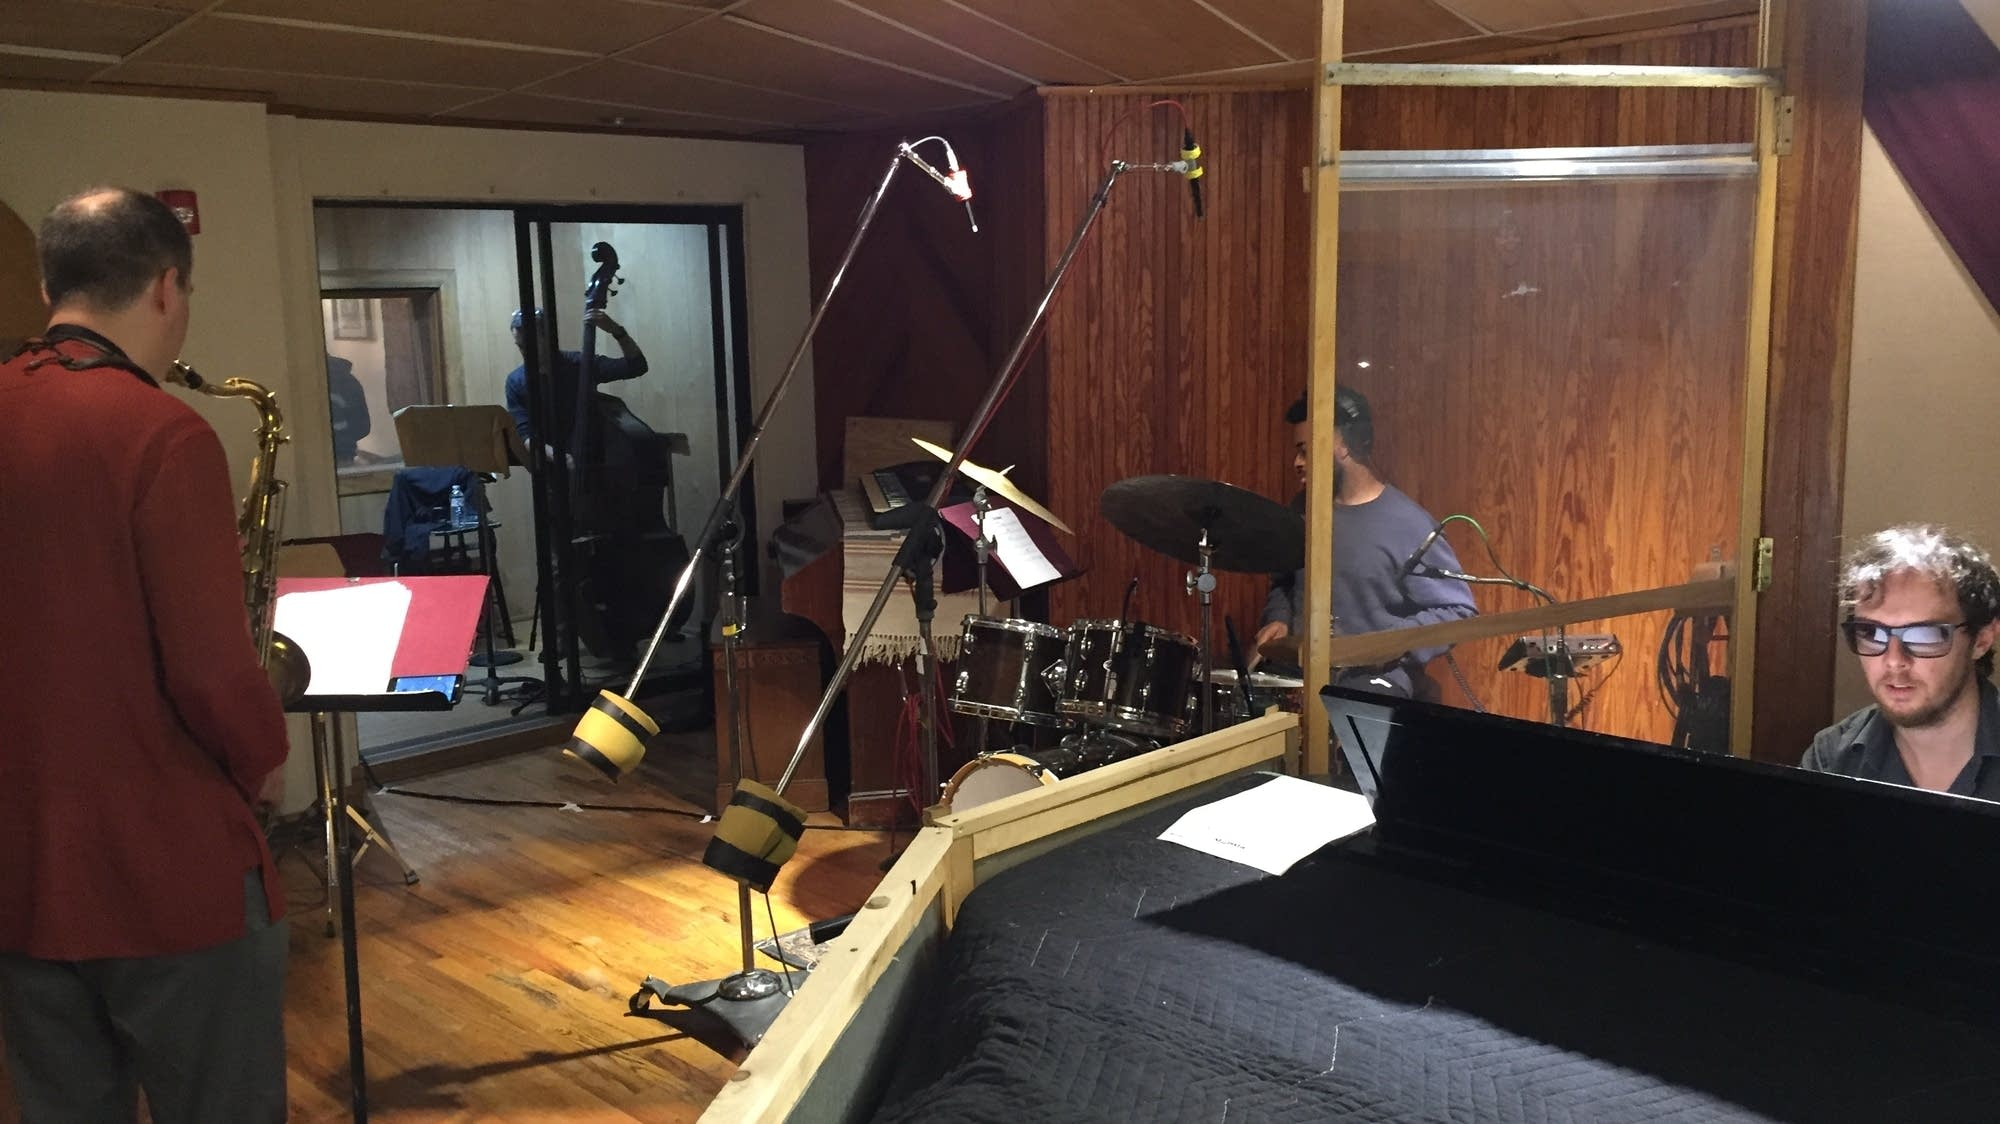 Arun luthra and band in recording studio